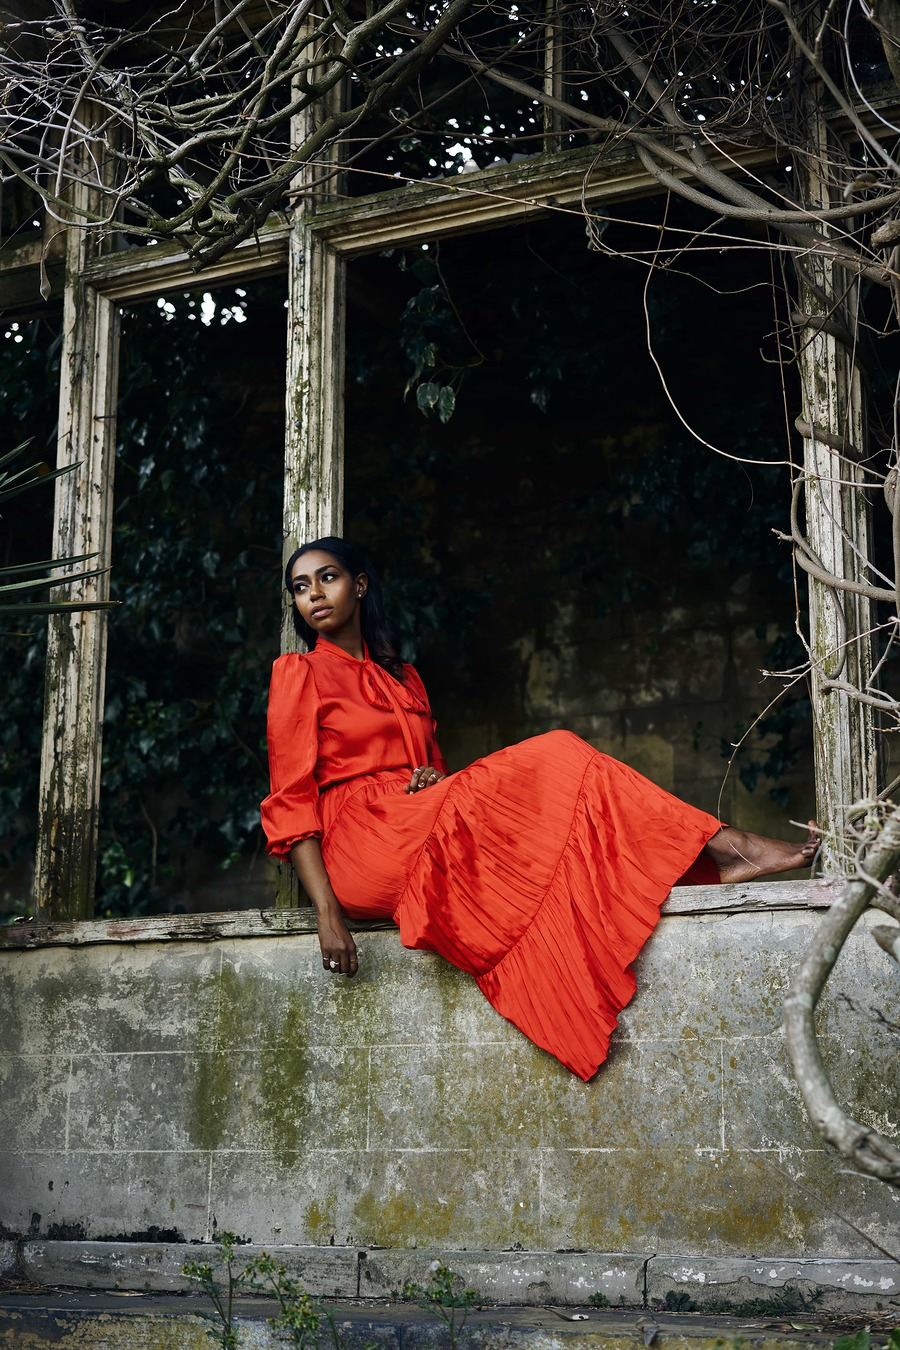 Sahar - Red Dress / Photography by Kyle May / Uploaded 9th August 2020 @ 05:08 PM